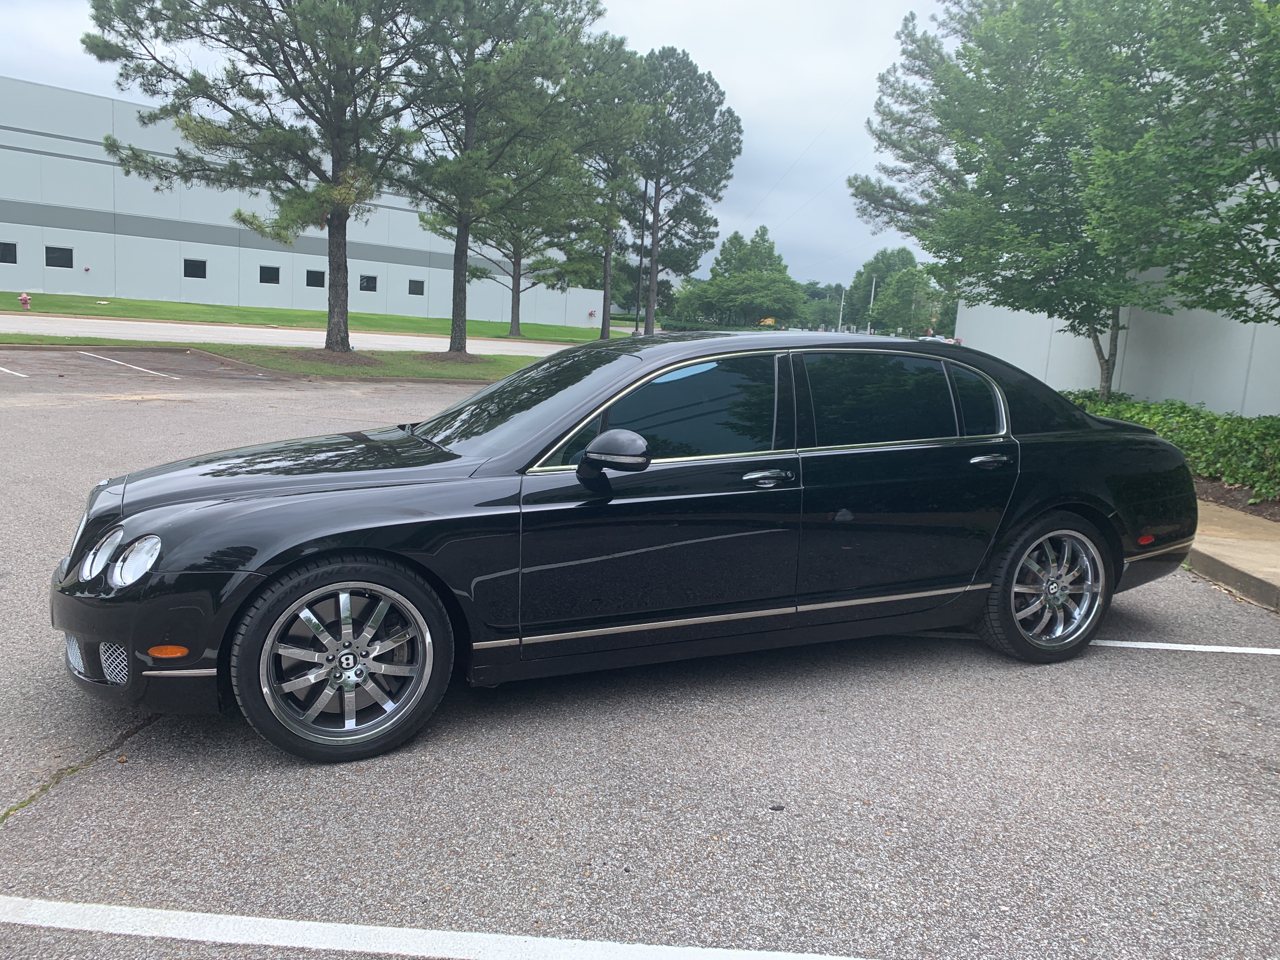 Bentley Continental Flying Spur 4dr Sdn Speed 2013